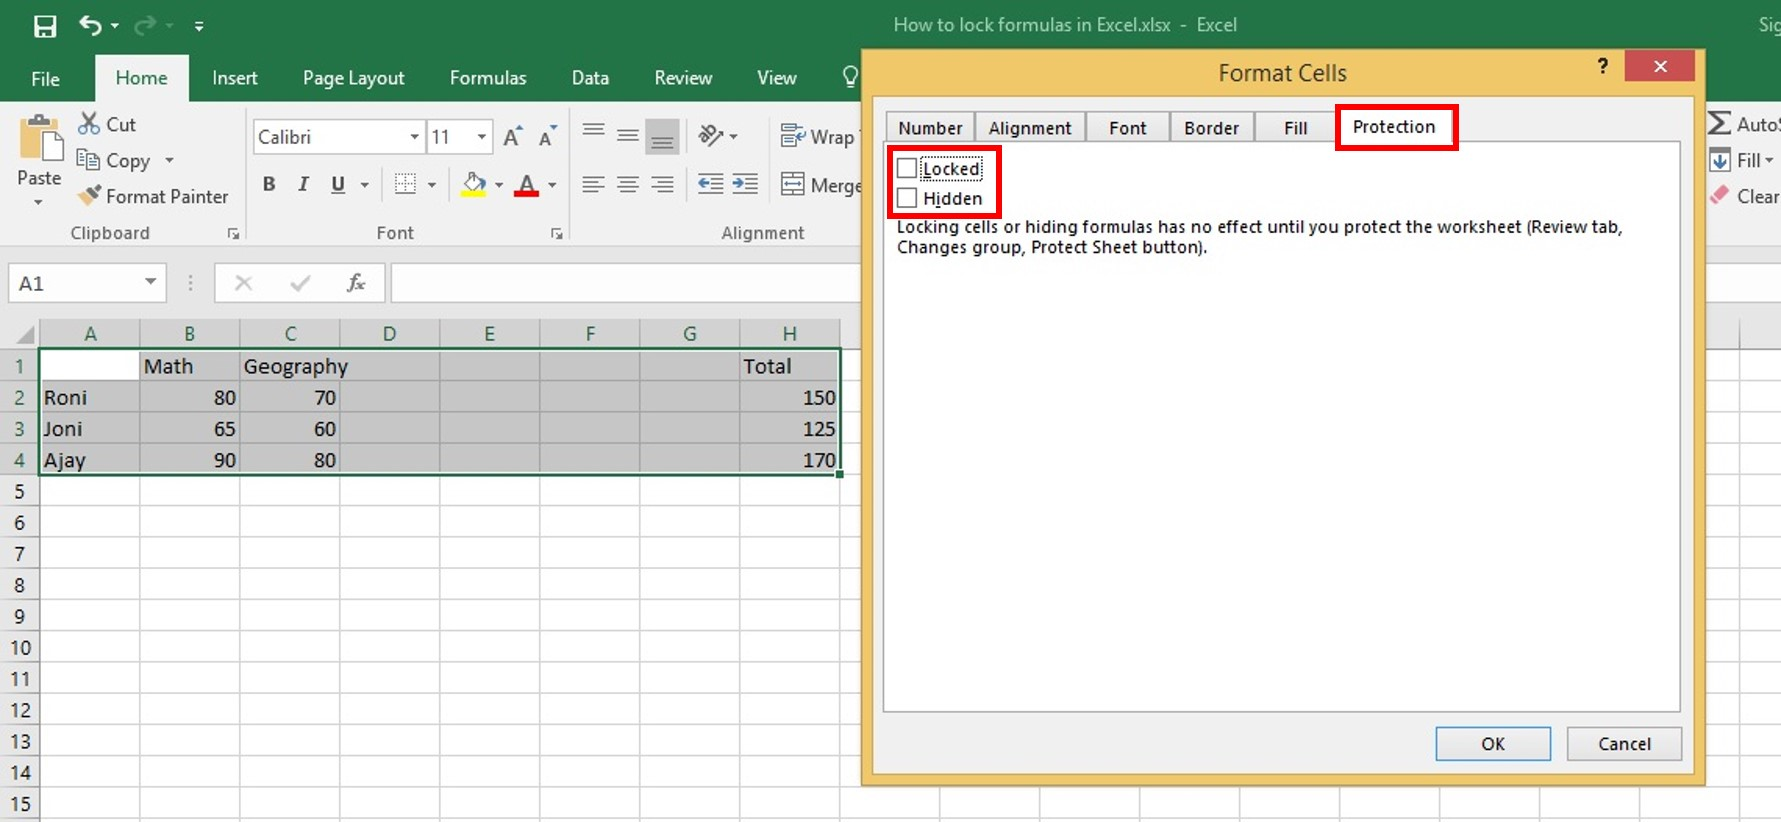 How To Lock Formulas In Excel A Step By Step Guide